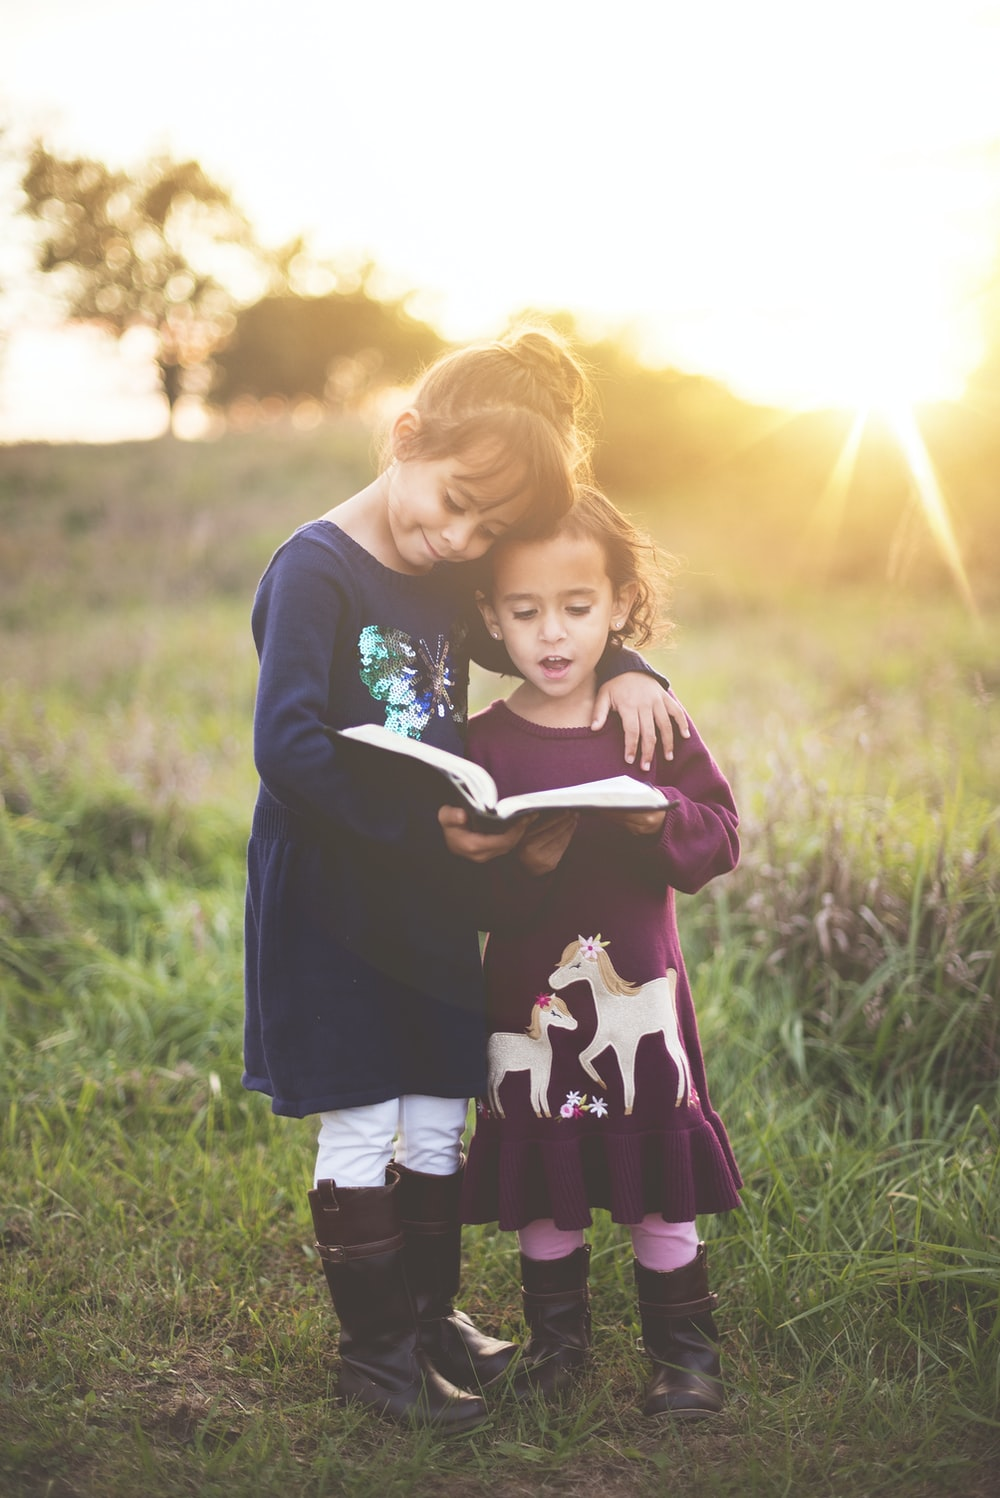 girl's left hand wrap around toddler while reading book during golden hour